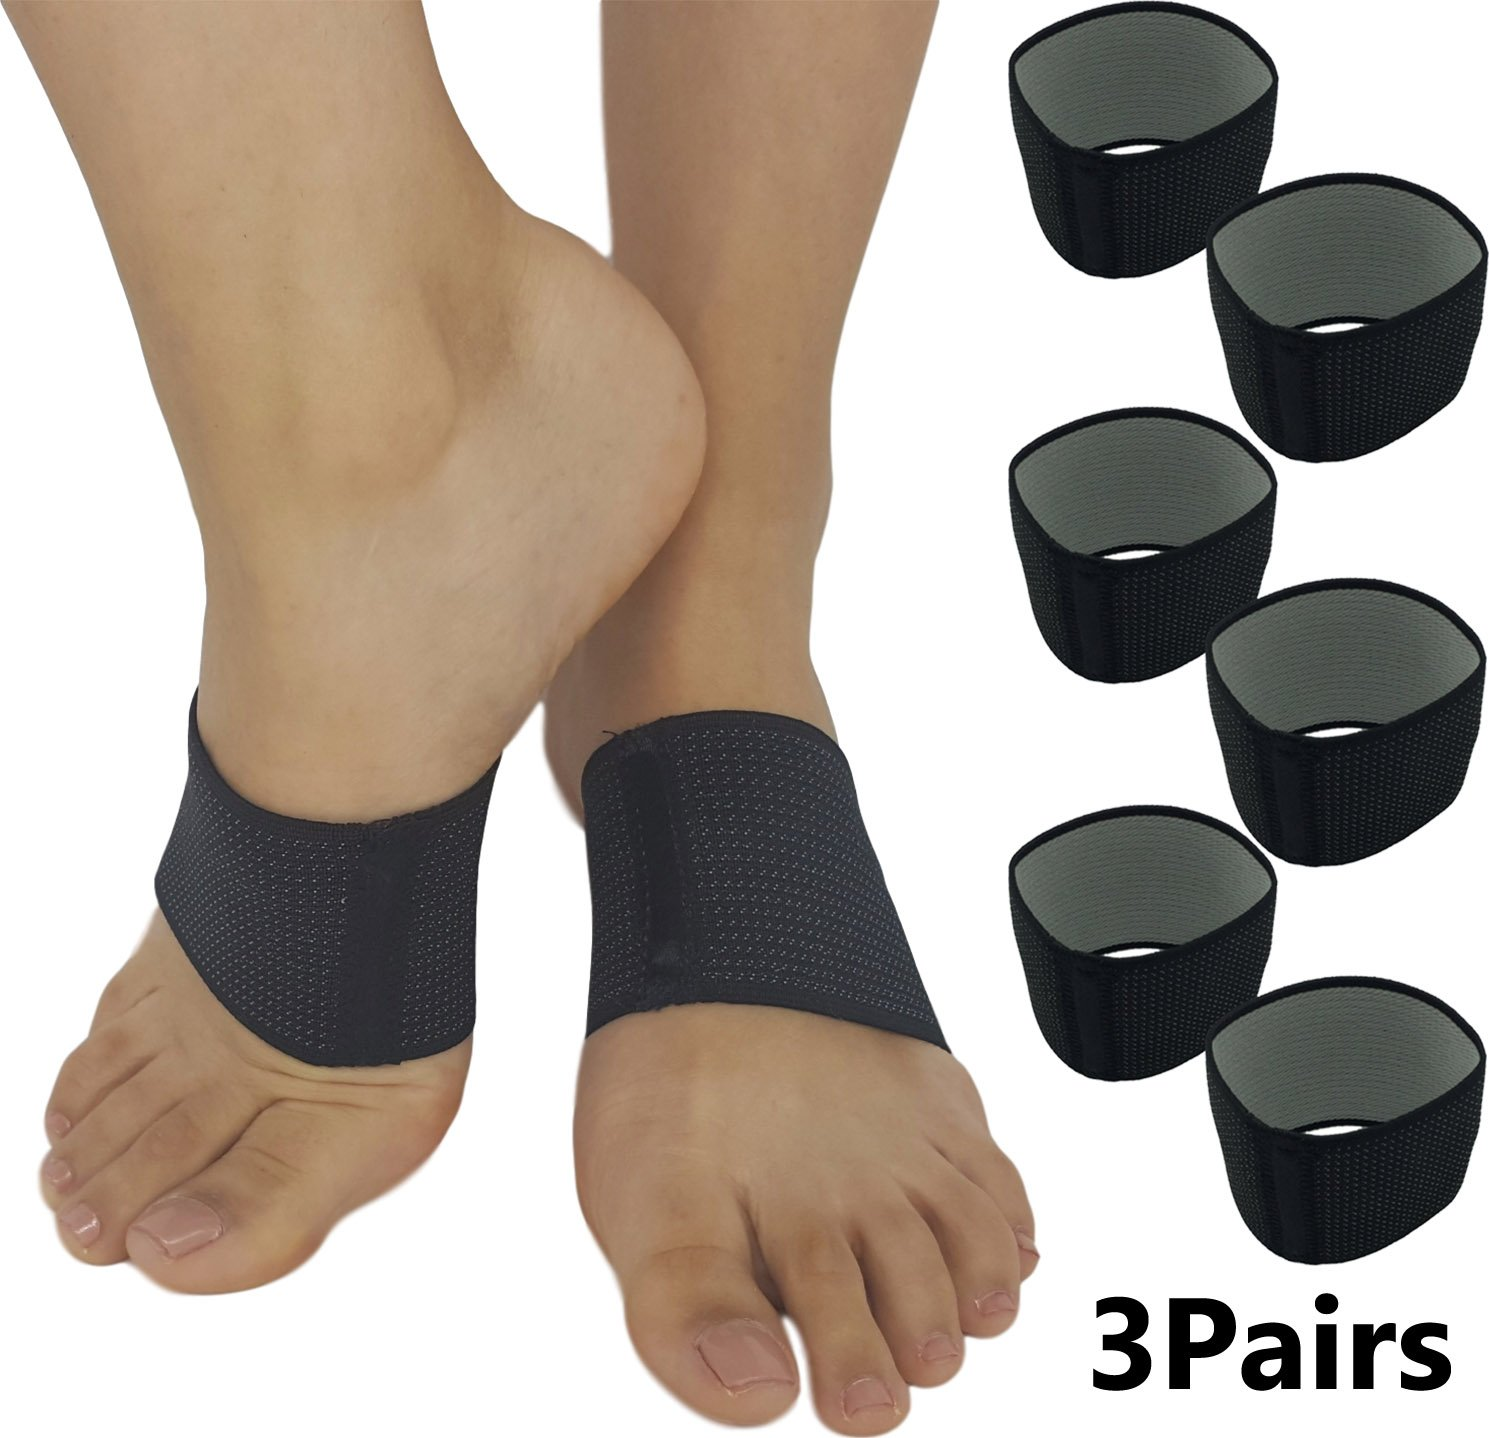 Plantar Fasciitis Brace Arch Supports - Effective Foot and Heel Pain Relief Sleeves Helps Sore Heels Spurs, Flat Feet and Arches Comfortable Copper Infused Fascia Bands (3 Pairs)